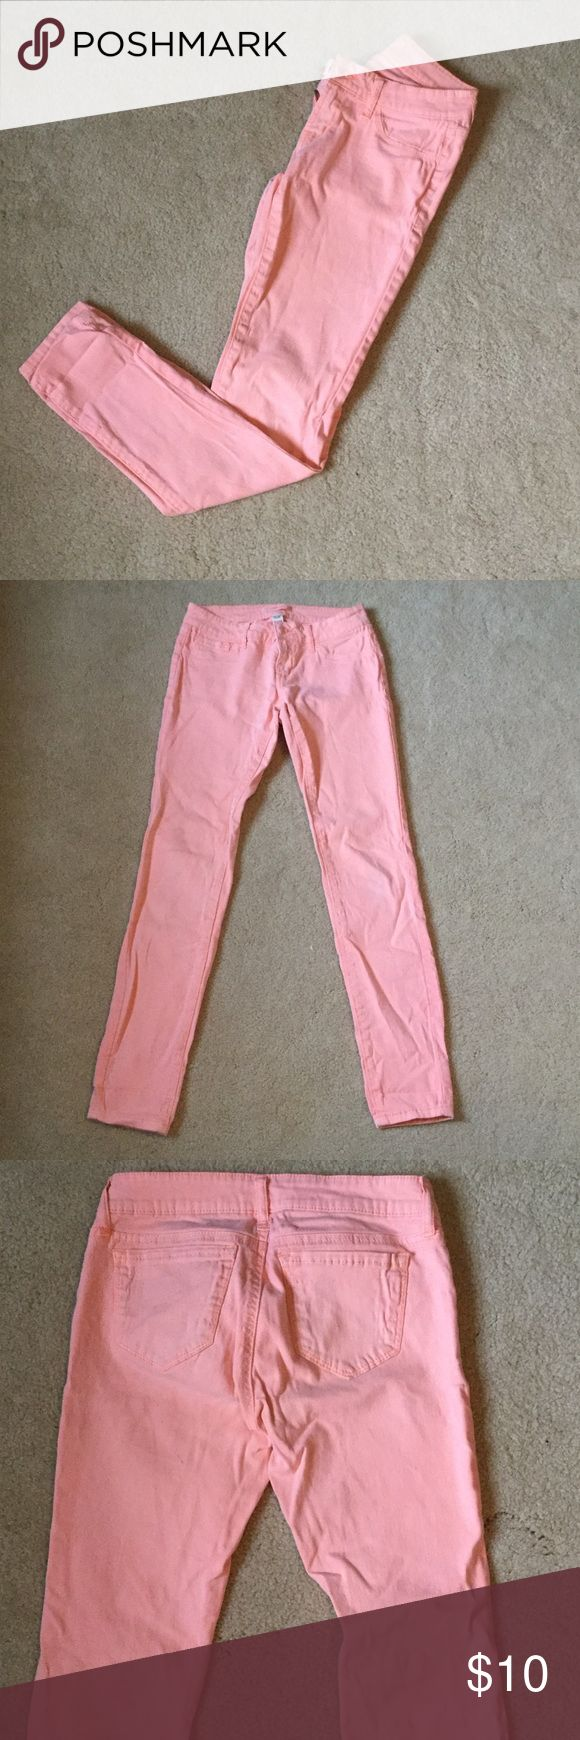 Peach skin tight legging jeans Only worn once. 98% cotton 2% spandex Charlotte Russe Jeans Skinny